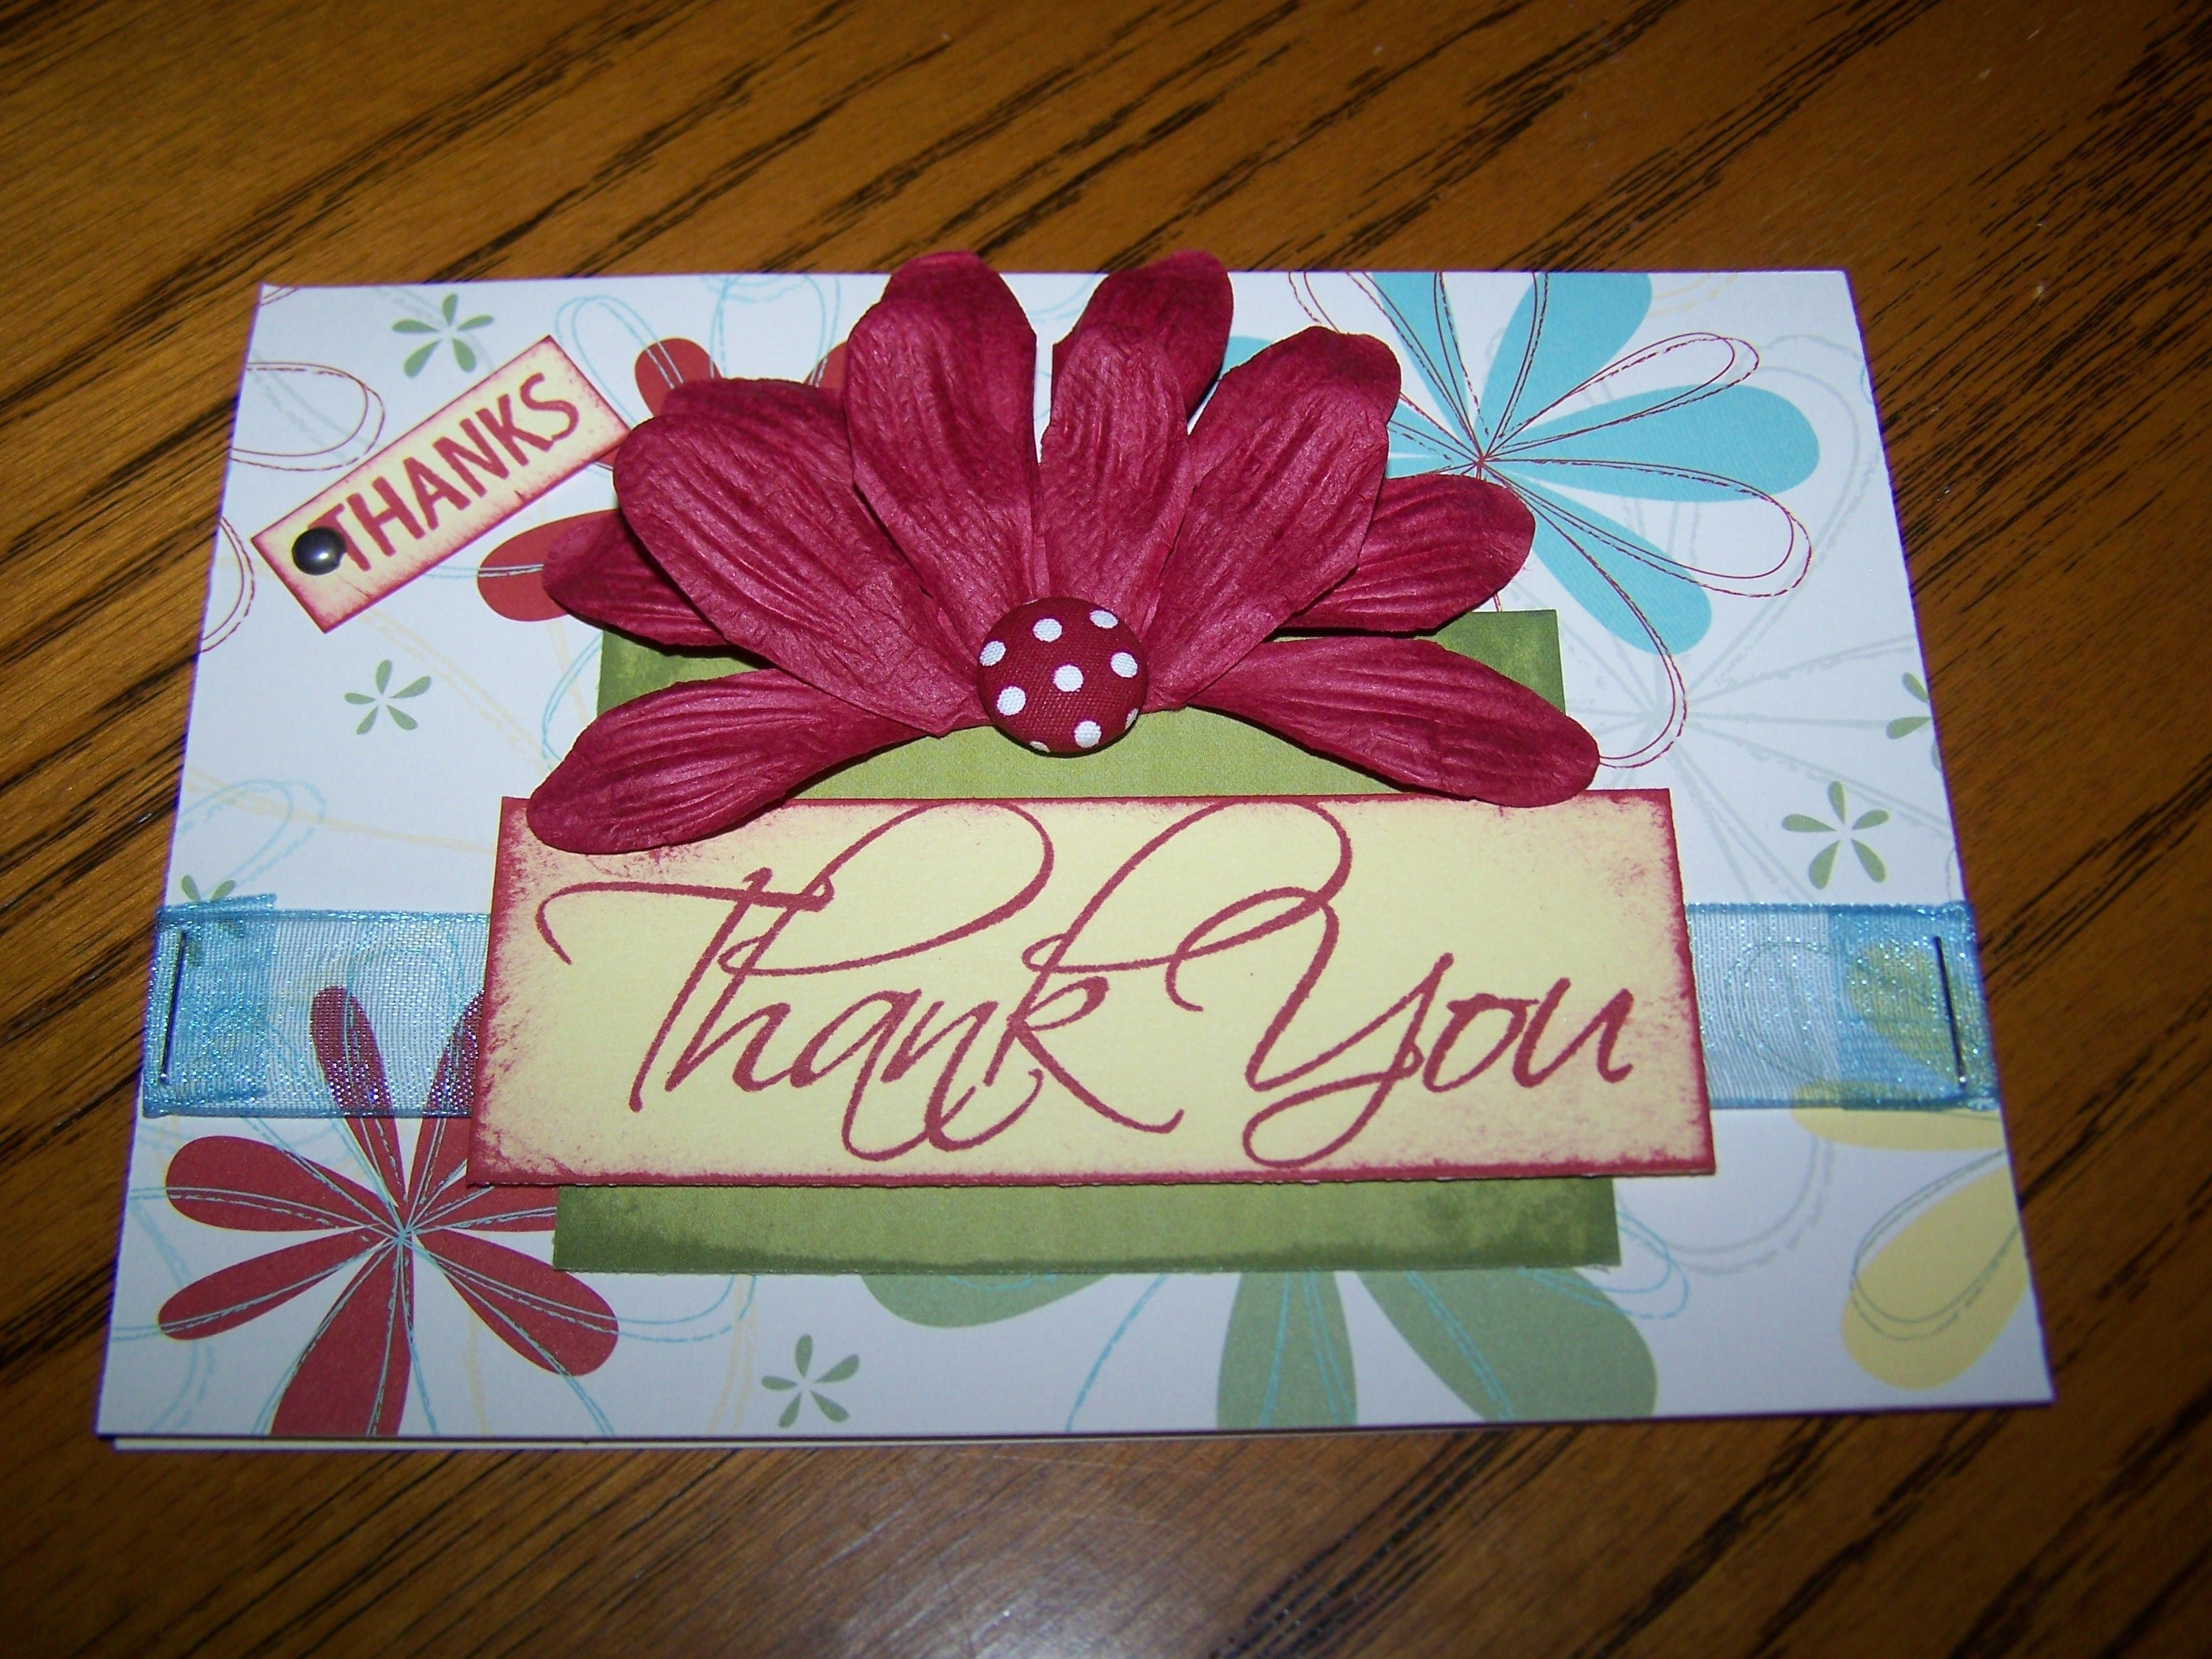 10 Famous Ideas For Thank You Cards thank you card good ideas and tips 1 2020